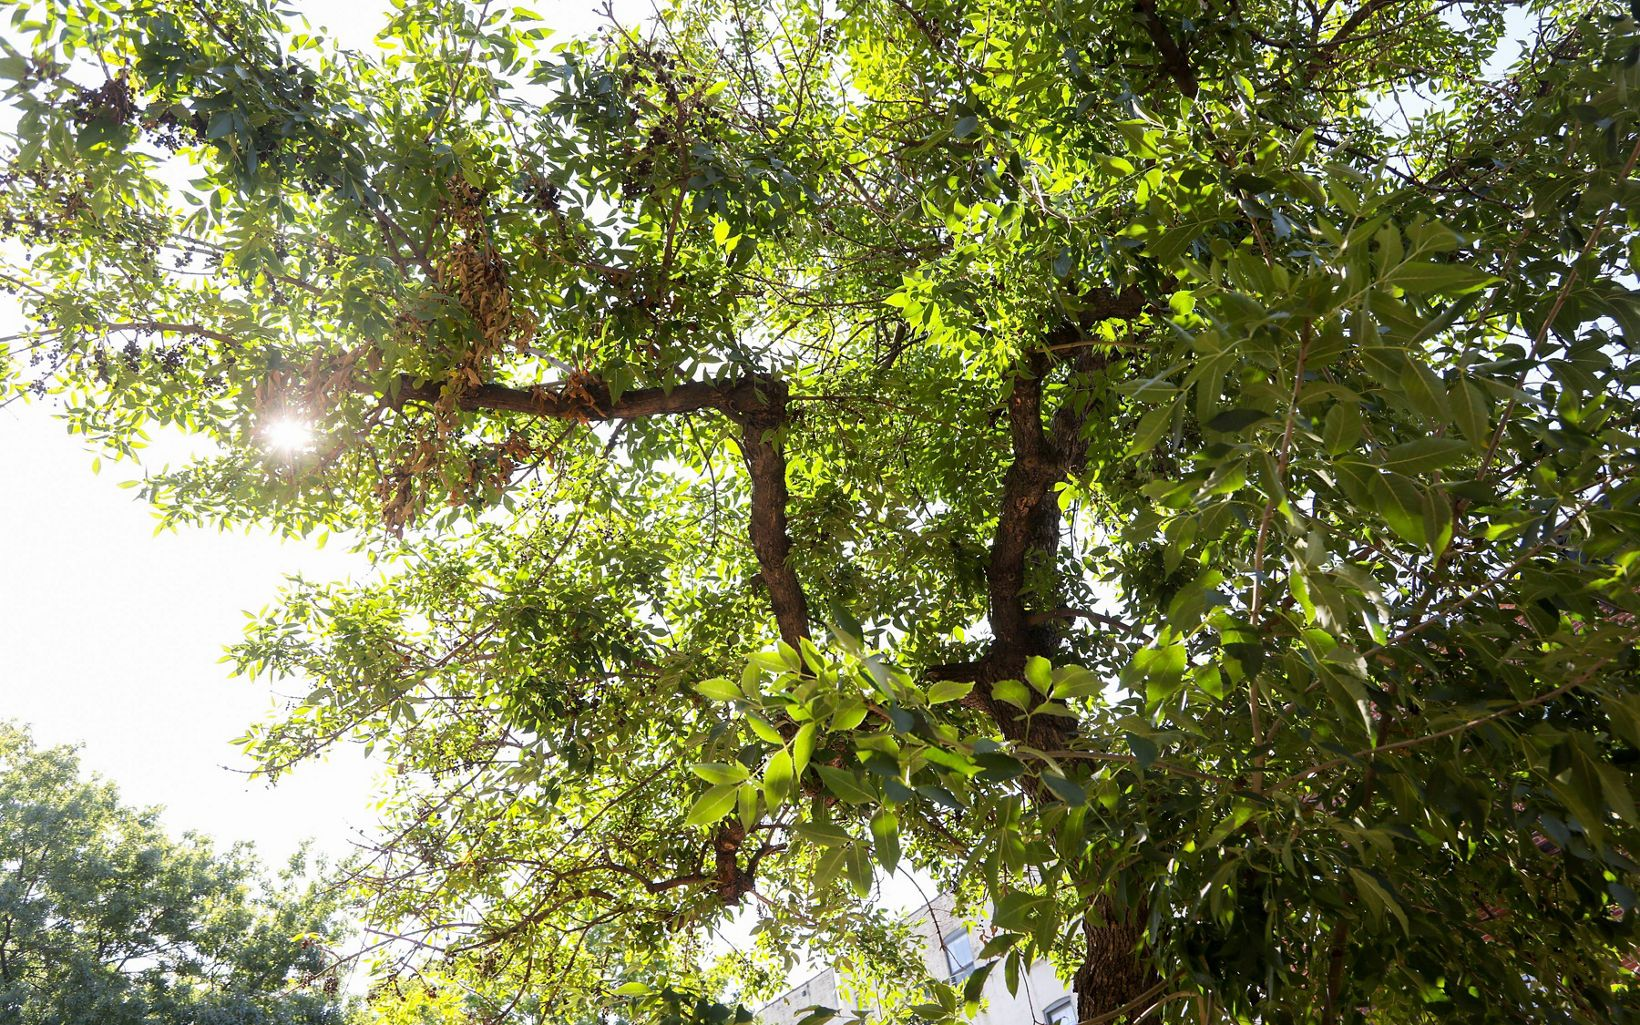 A view looking up into the canopy of a tree. Green tree leaves and a brown tree trunk, going in a few different directions, are in view.